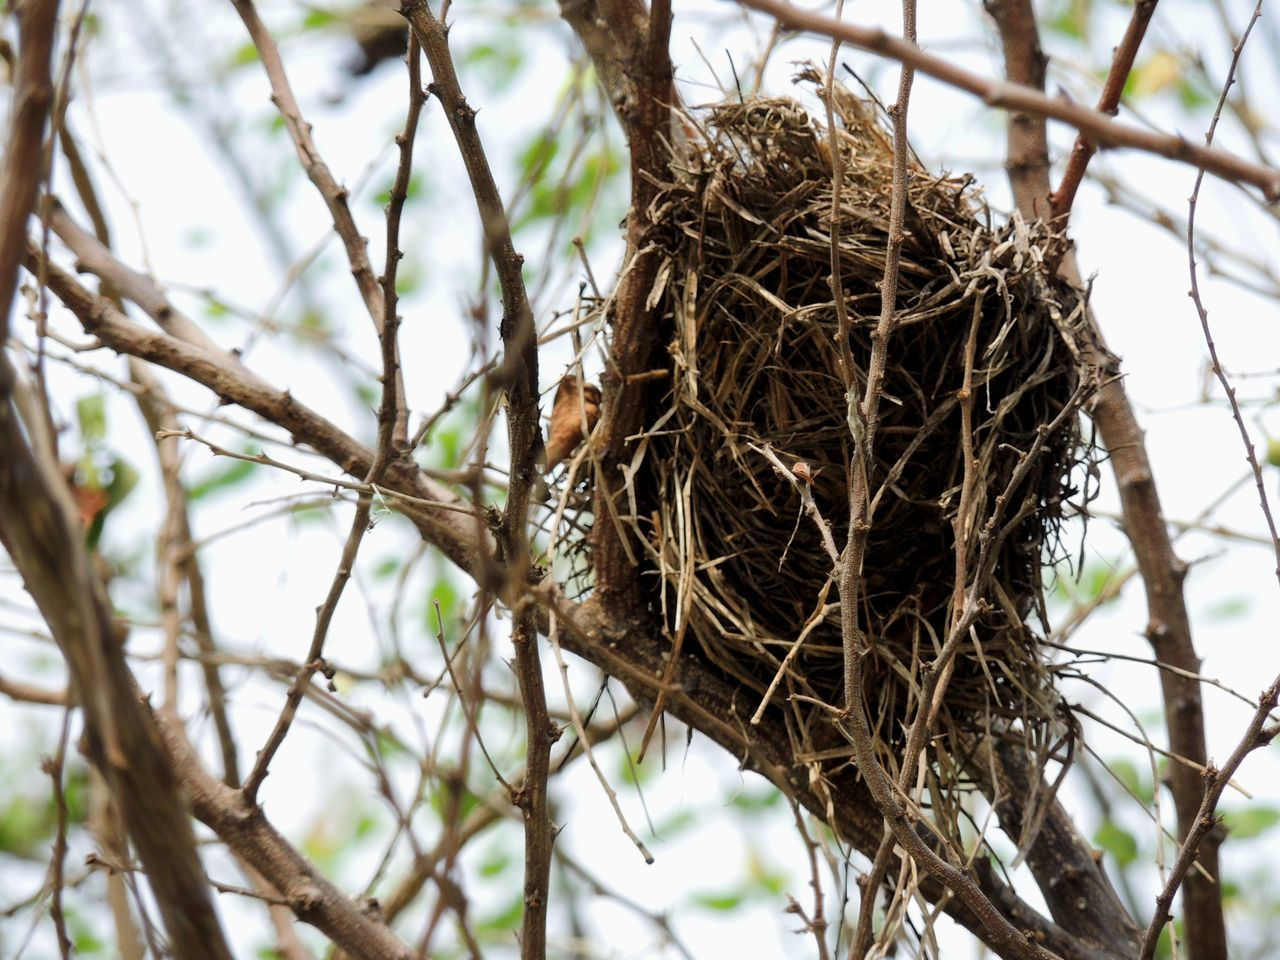 animals in the wild, animal themes, bird, bird nest, focus on foreground, animal wildlife, day, nature, no people, outdoors, tree, one animal, close-up, low angle view, branch, perching